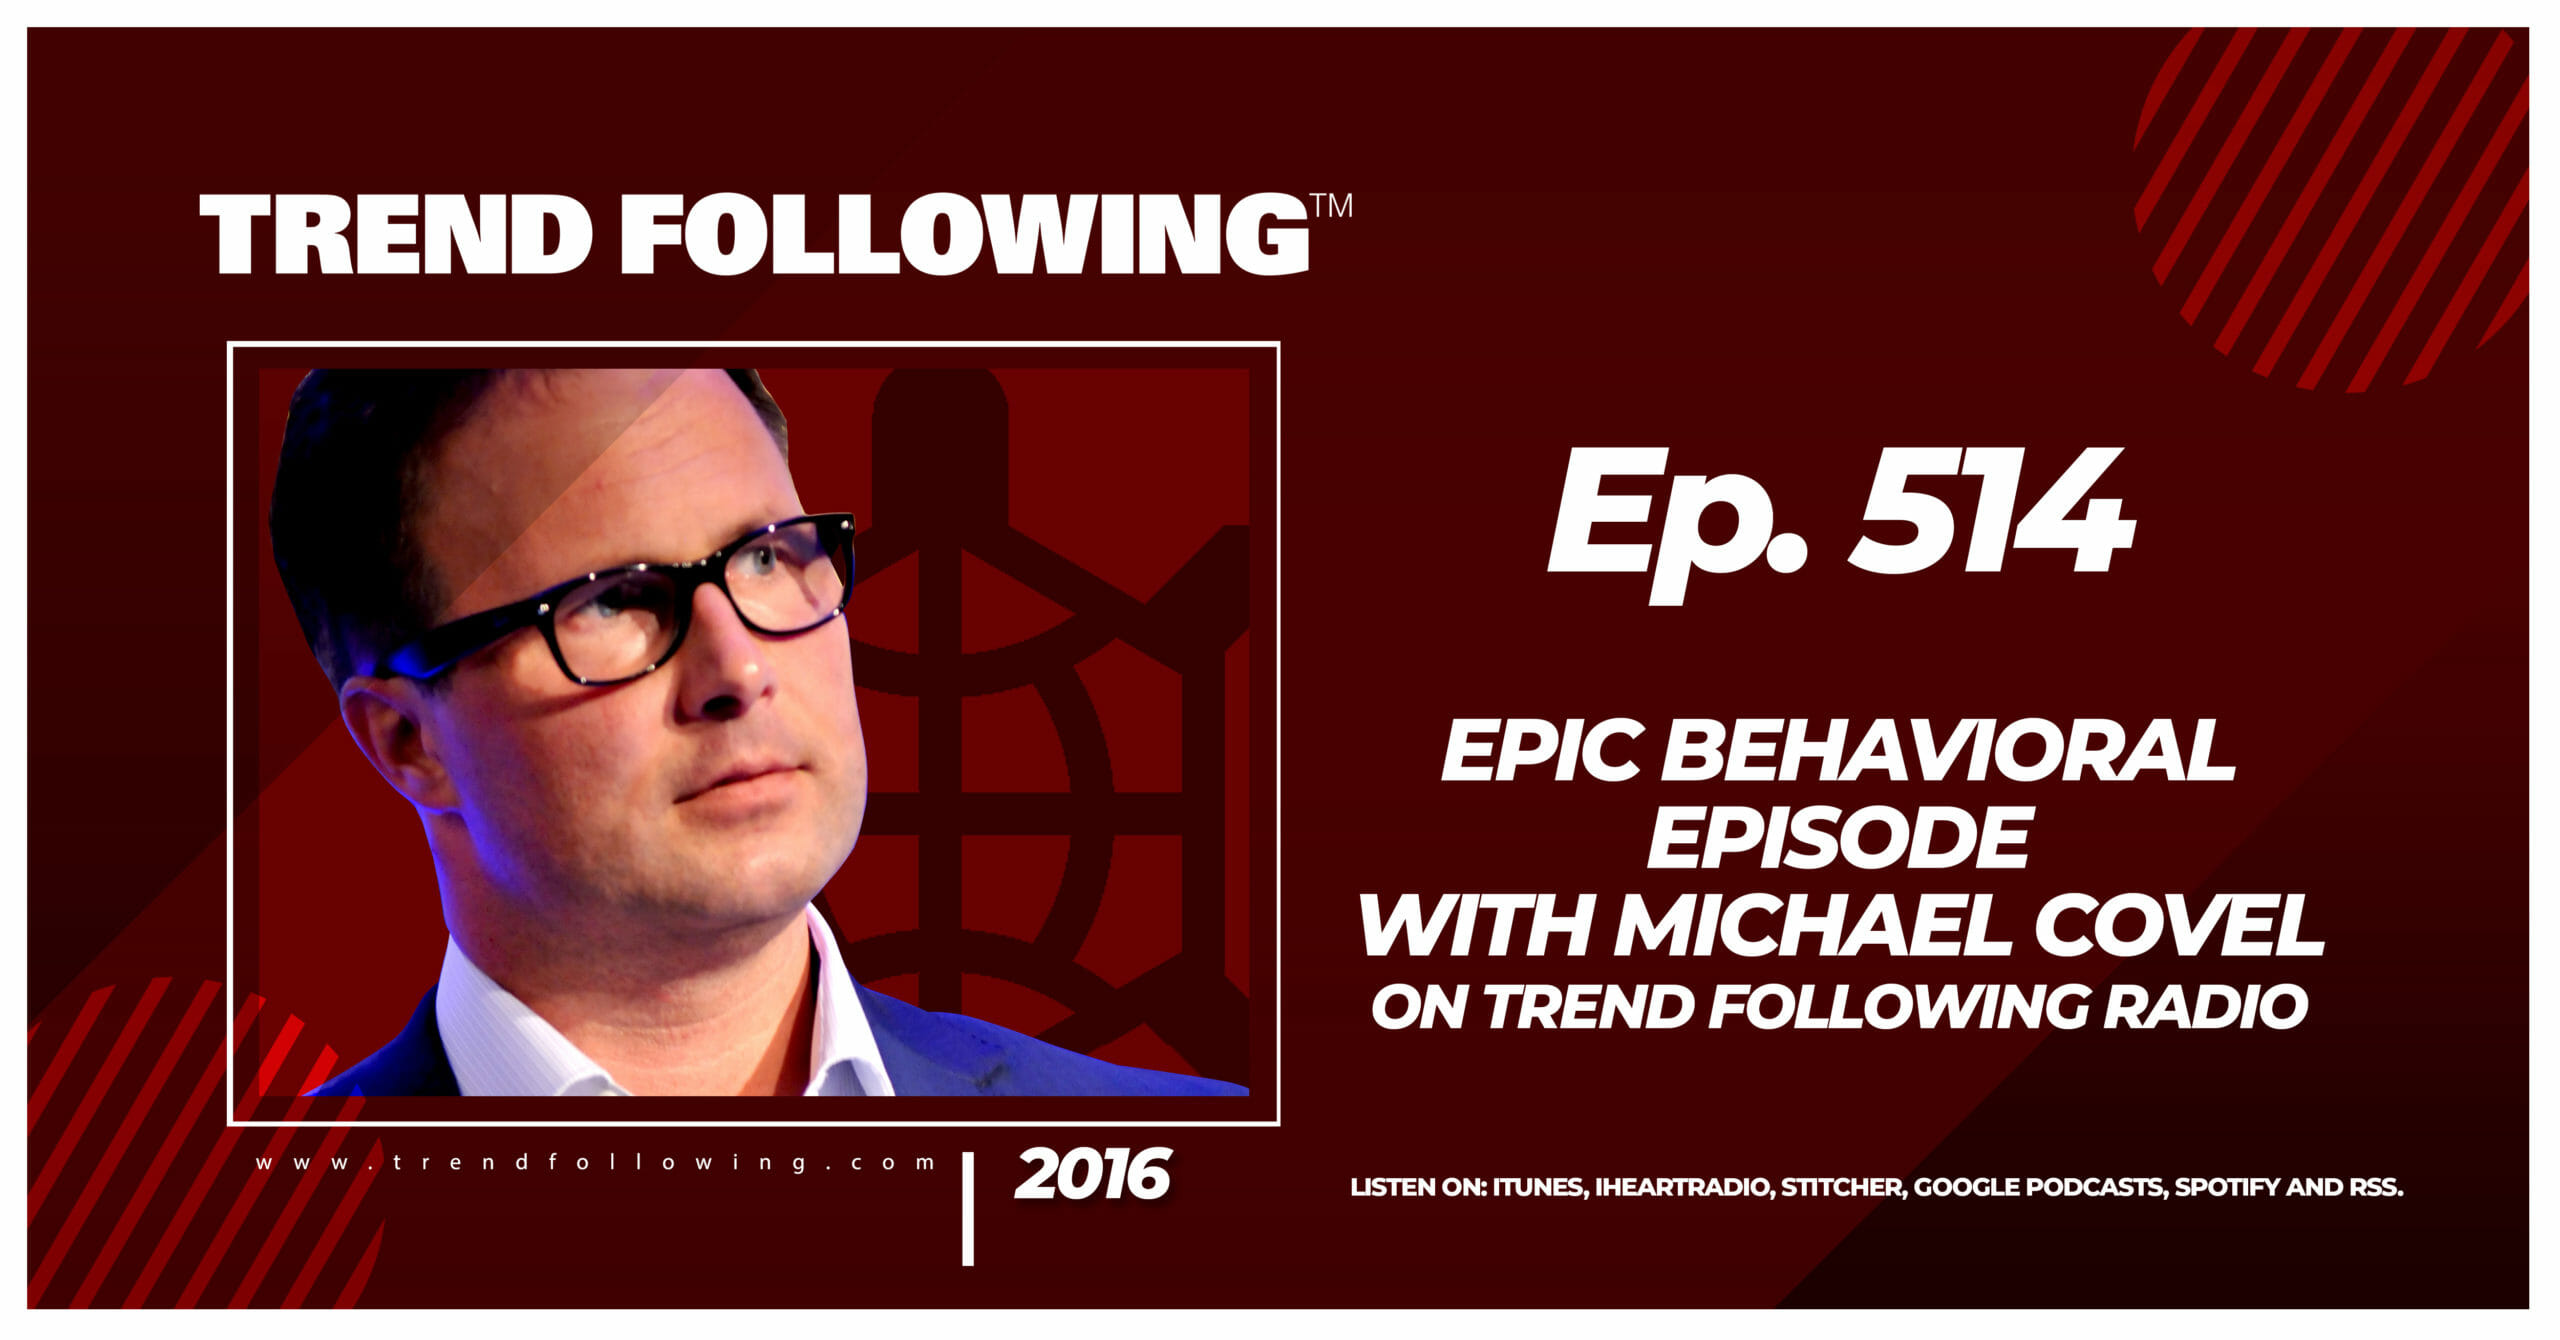 Epic Behavioral Episode with Michael Covel on Trend Following Radio